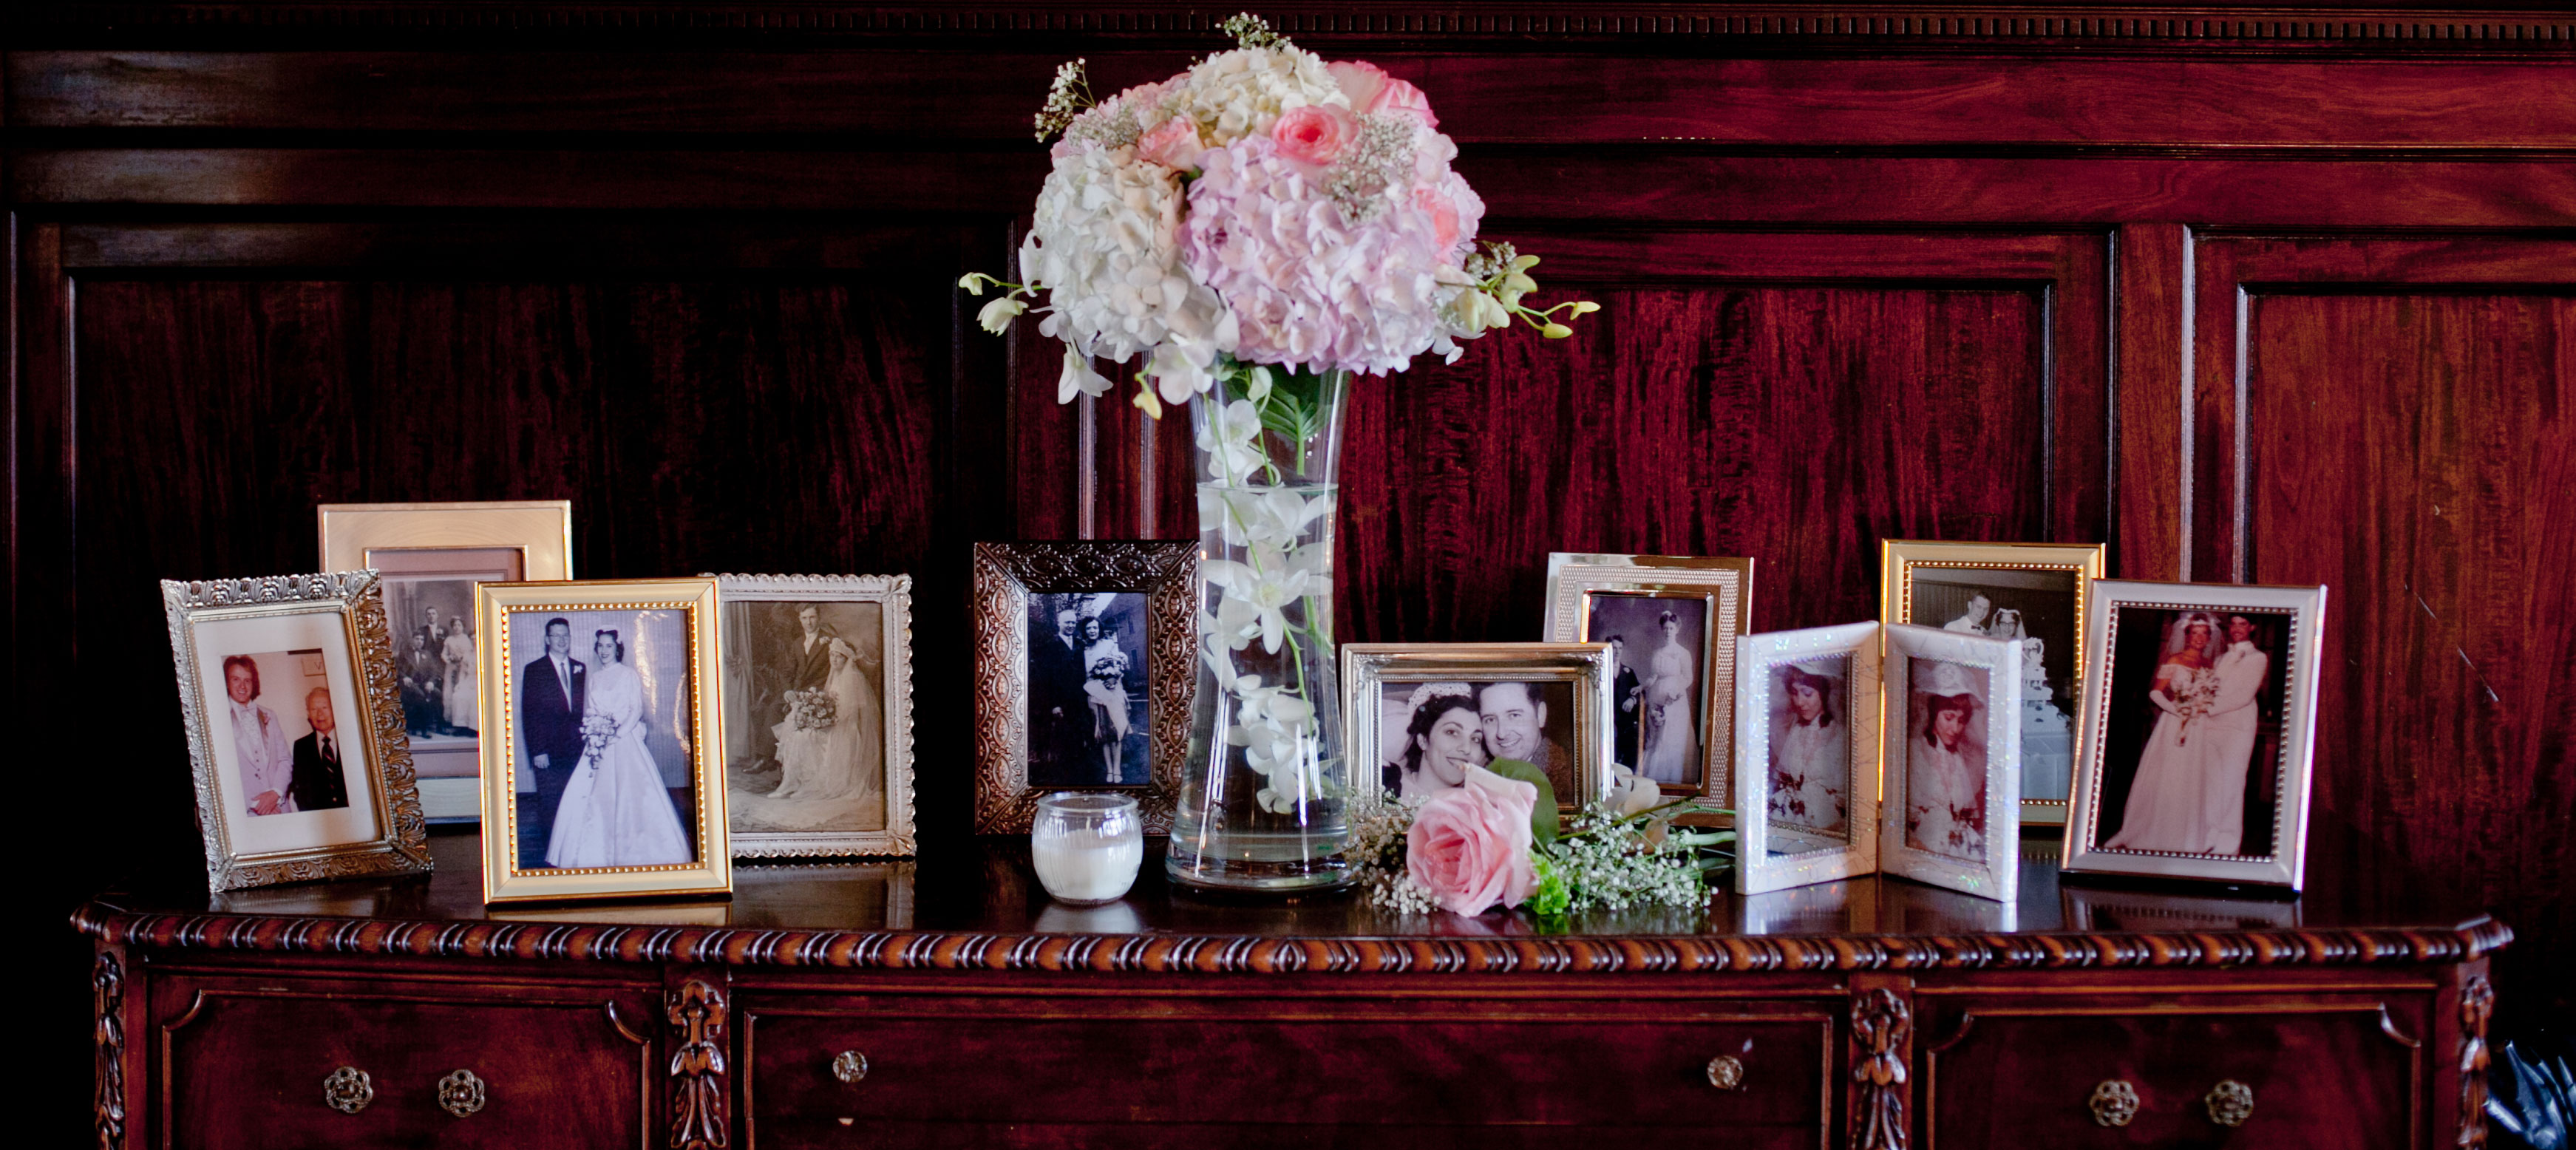 b7cba5a0c38 5 Ways to Honor Loved Ones at Your Wedding - Gonna Get Wed